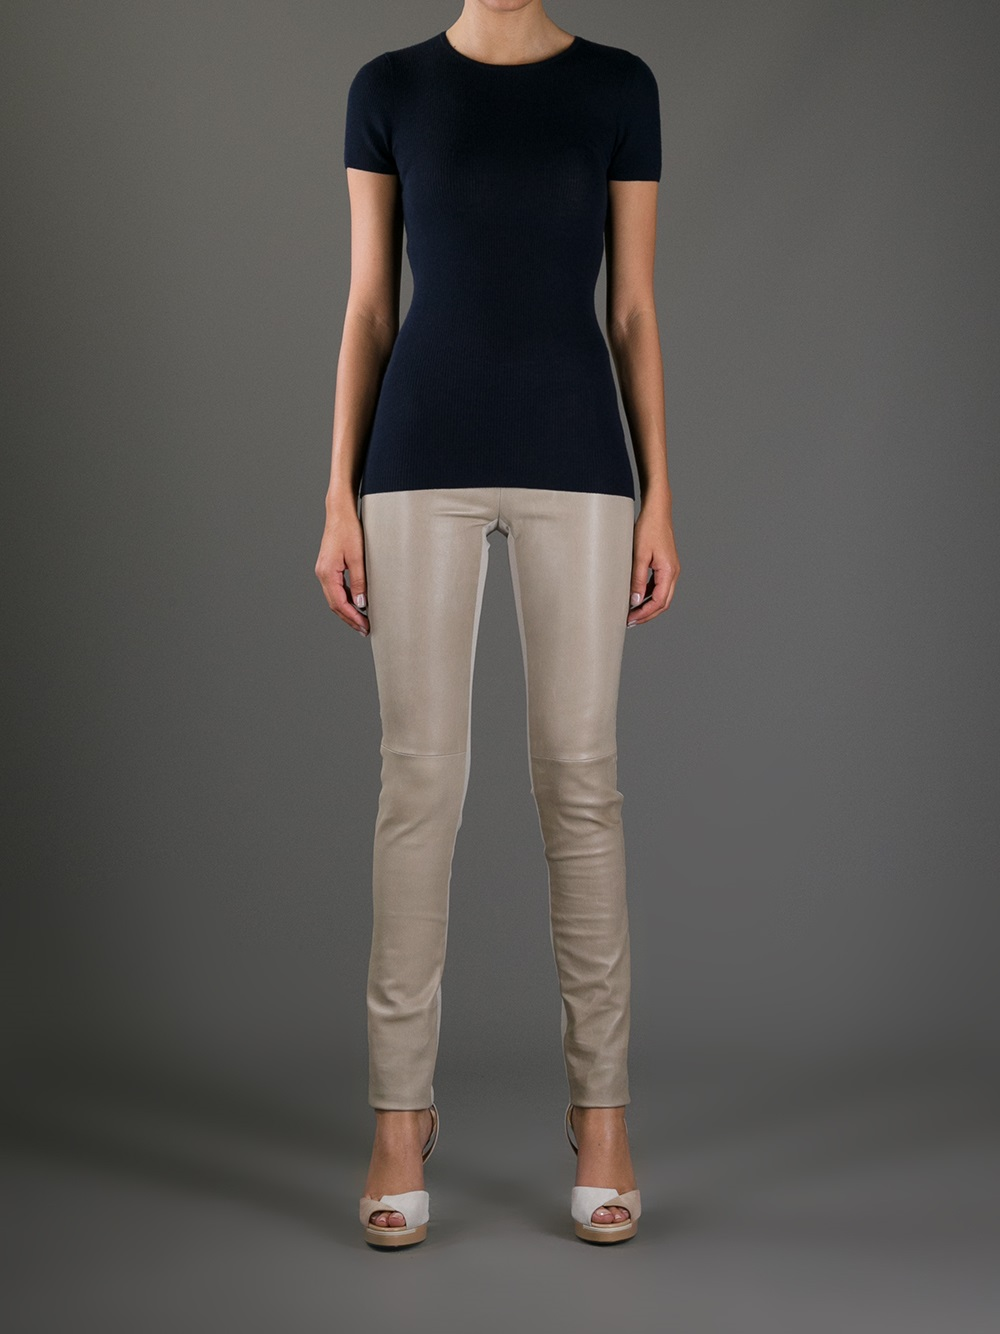 Joseph Stretch Leather Leggings in Natural | Lyst